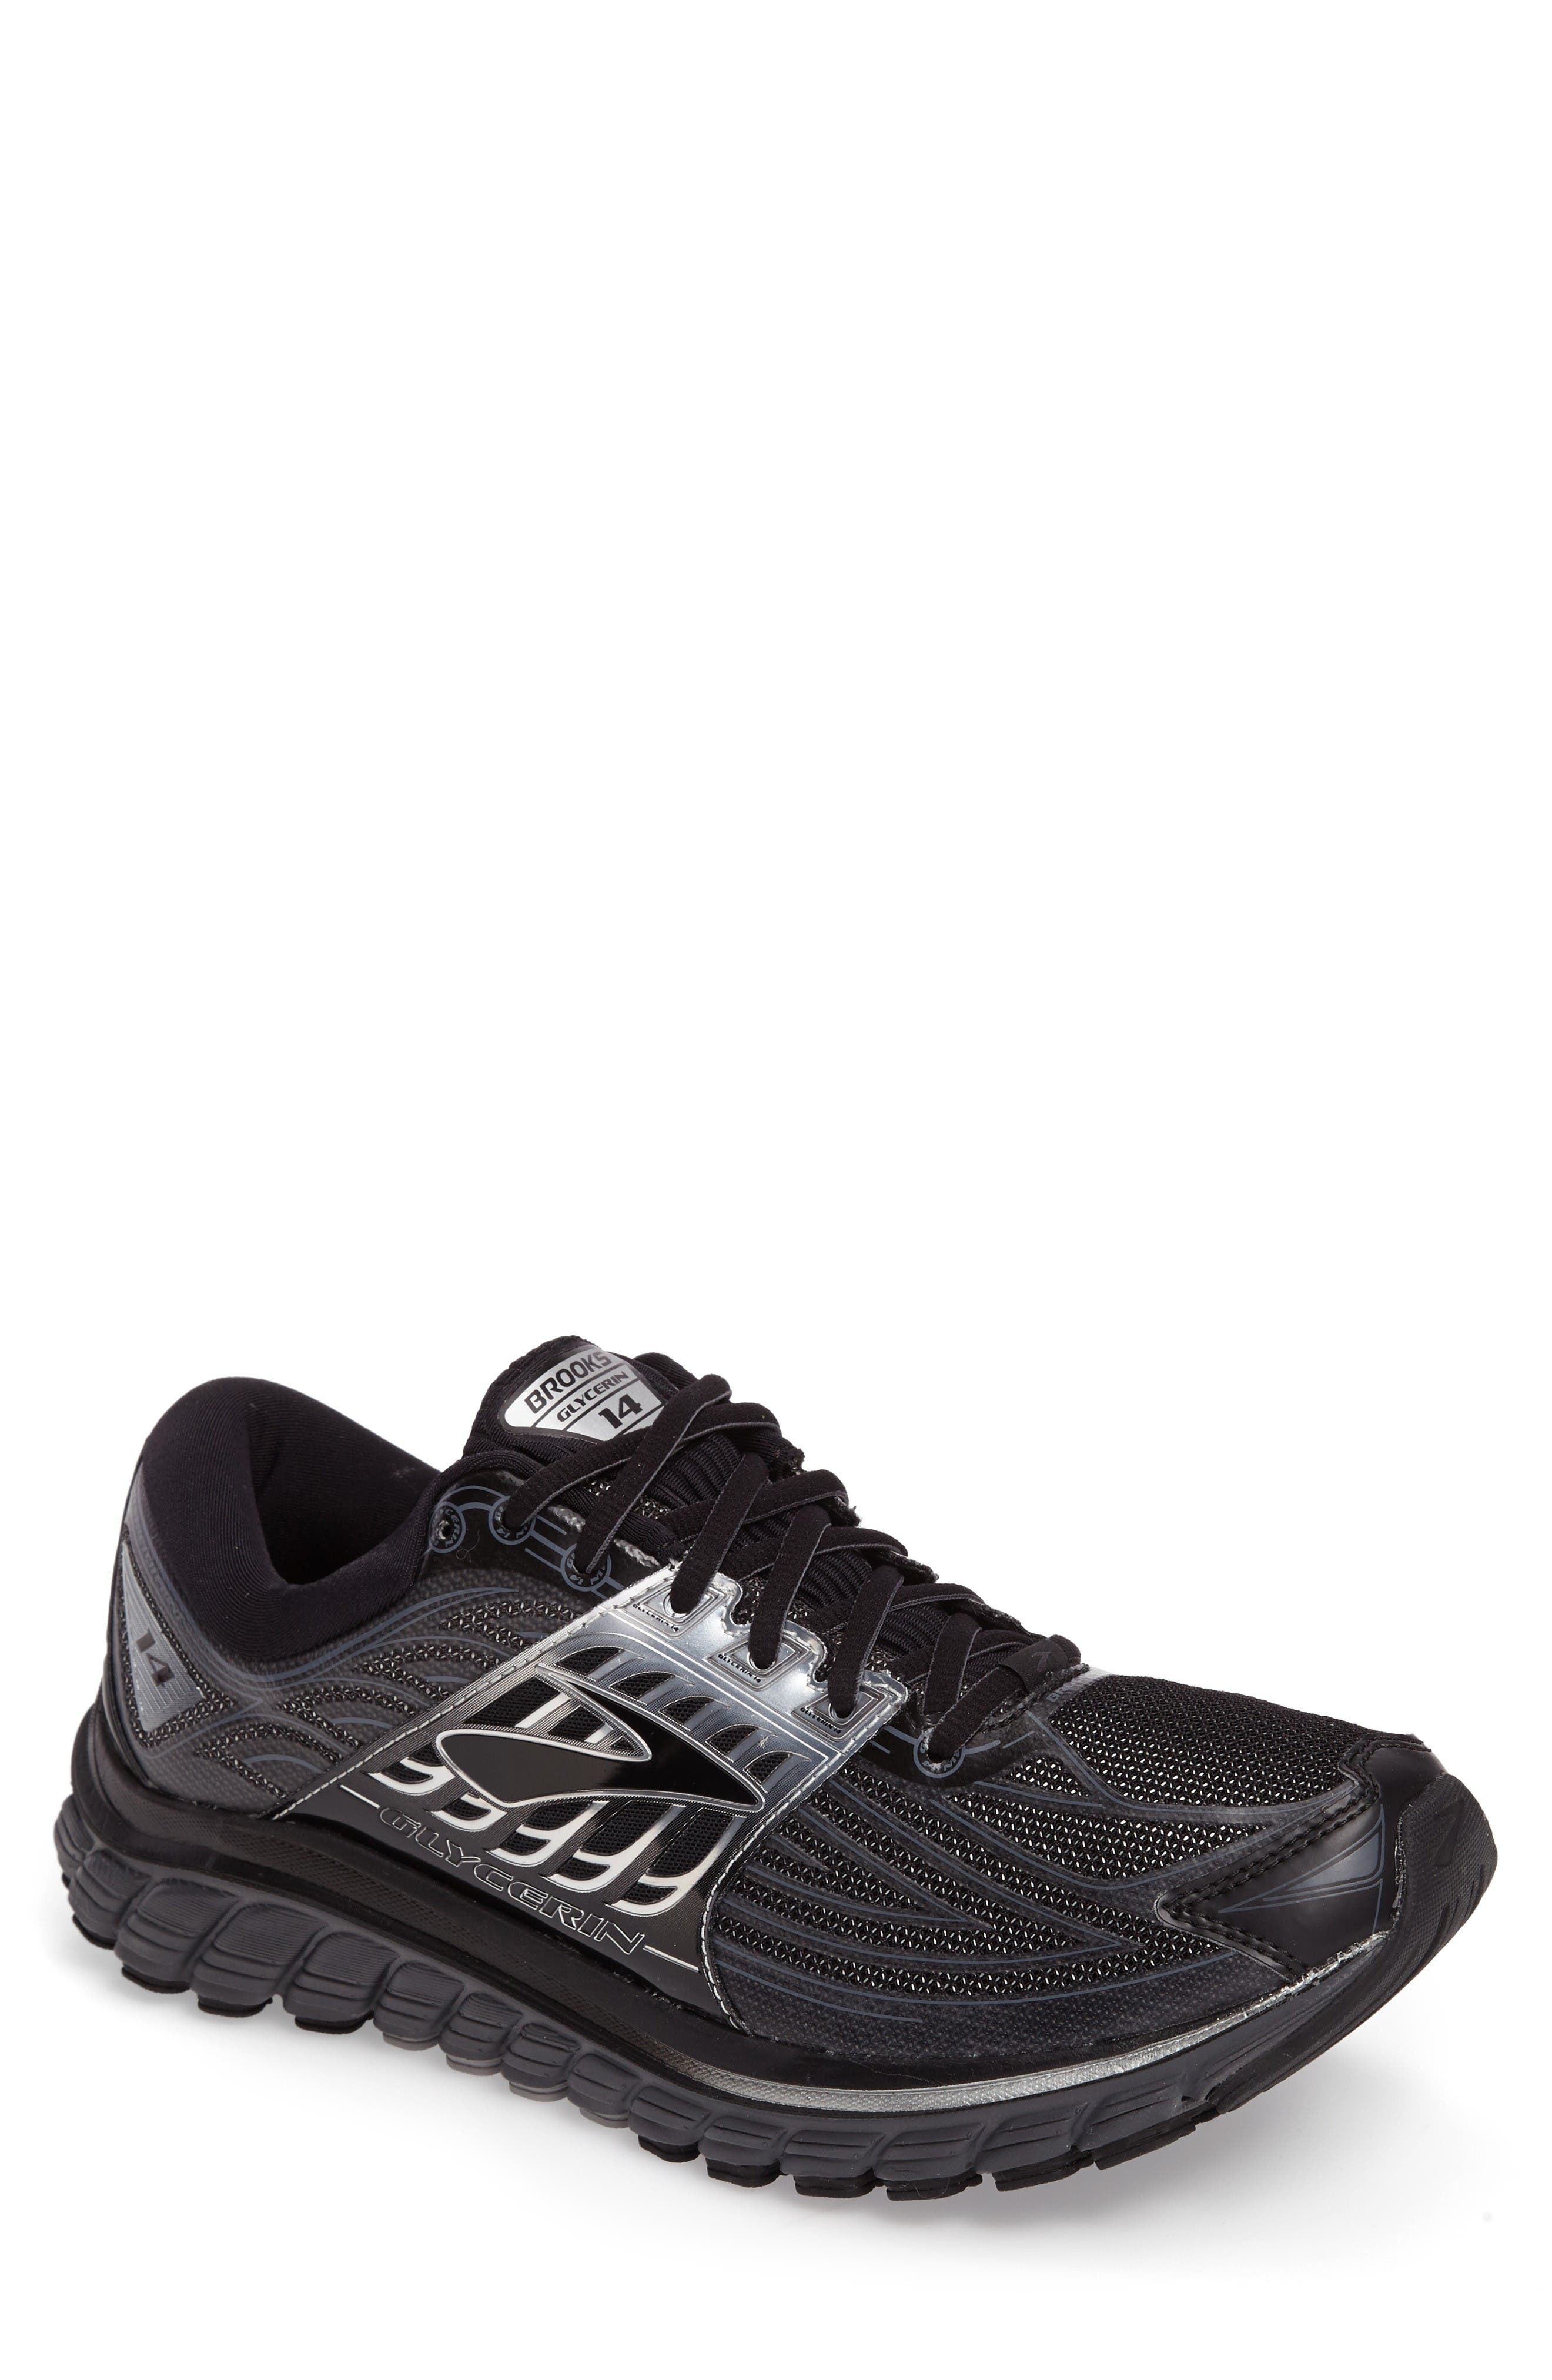 'Glycerin 14' Running Shoe,                             Main thumbnail 1, color,                             Black/ Anthracite/ Silver